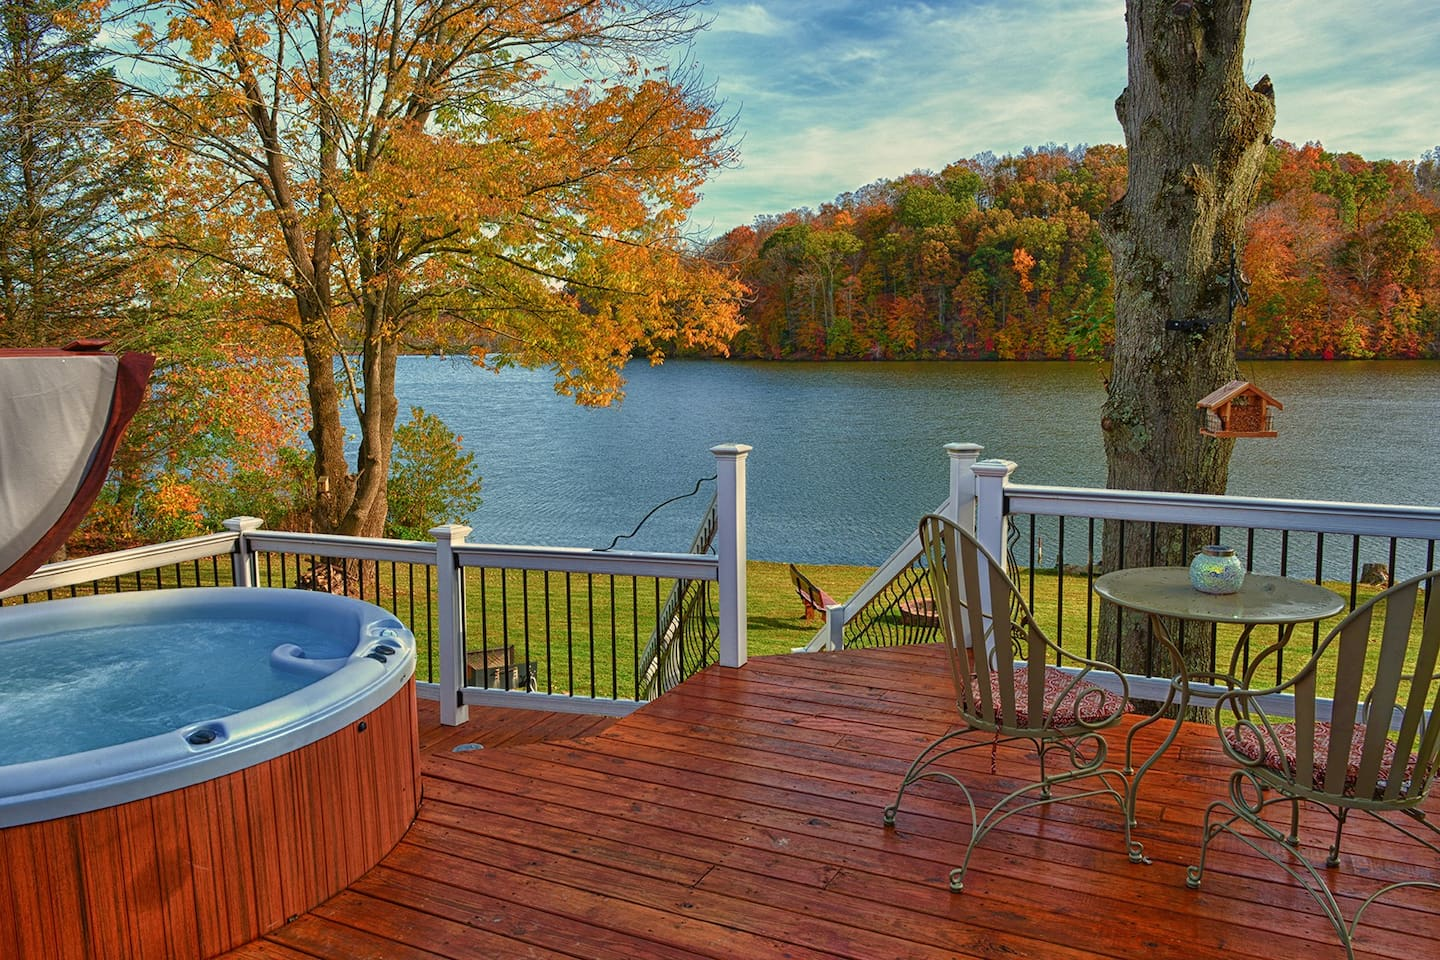 Come enjoy Eagle View Lake House. The view from the large deck is amazing all year long!  The hot tub awaits your arrival.